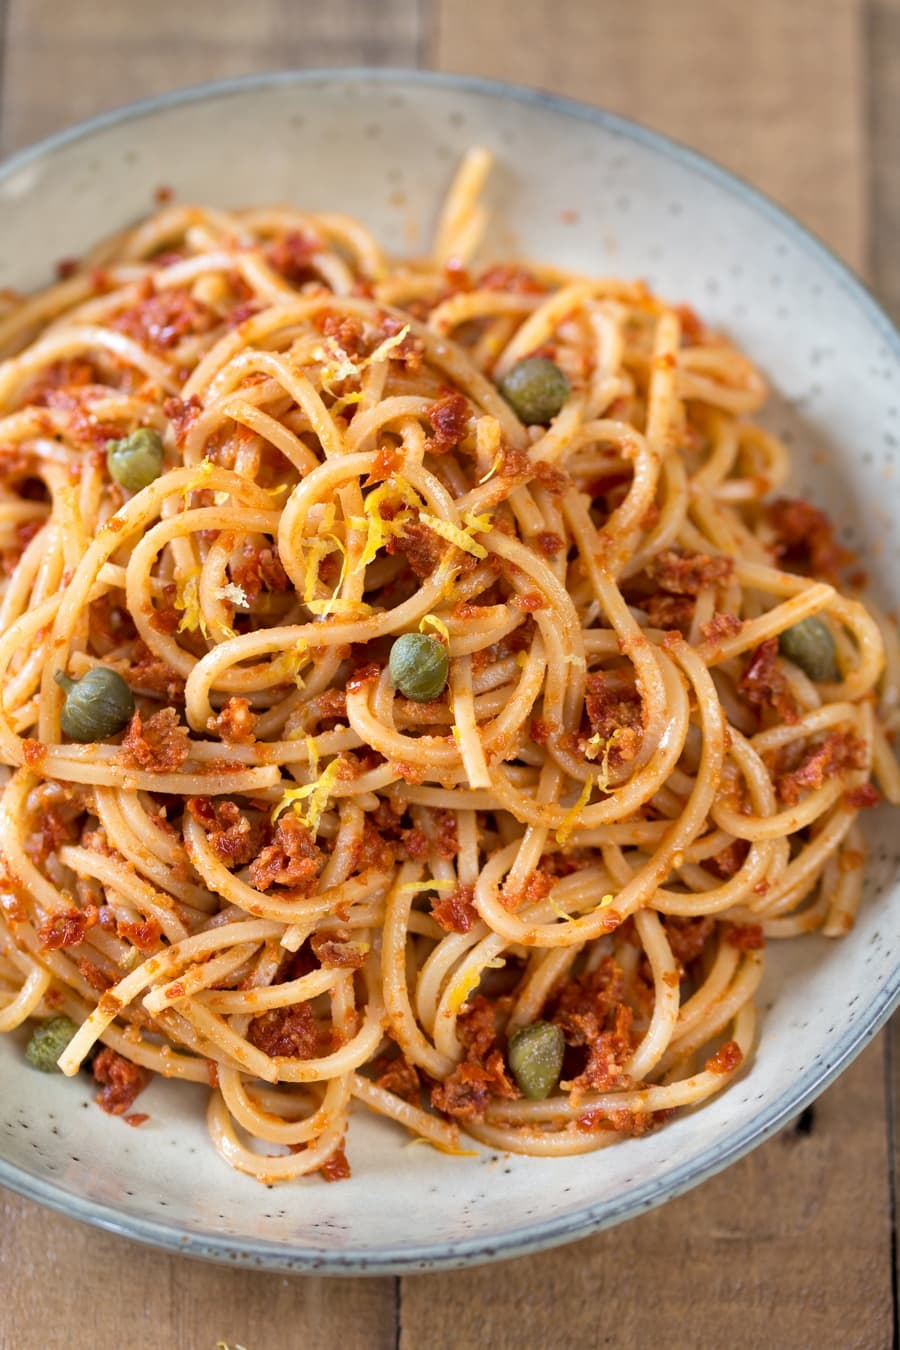 Spaghetti with sun-dried tomato pesto sauce with capers and lemon zest.